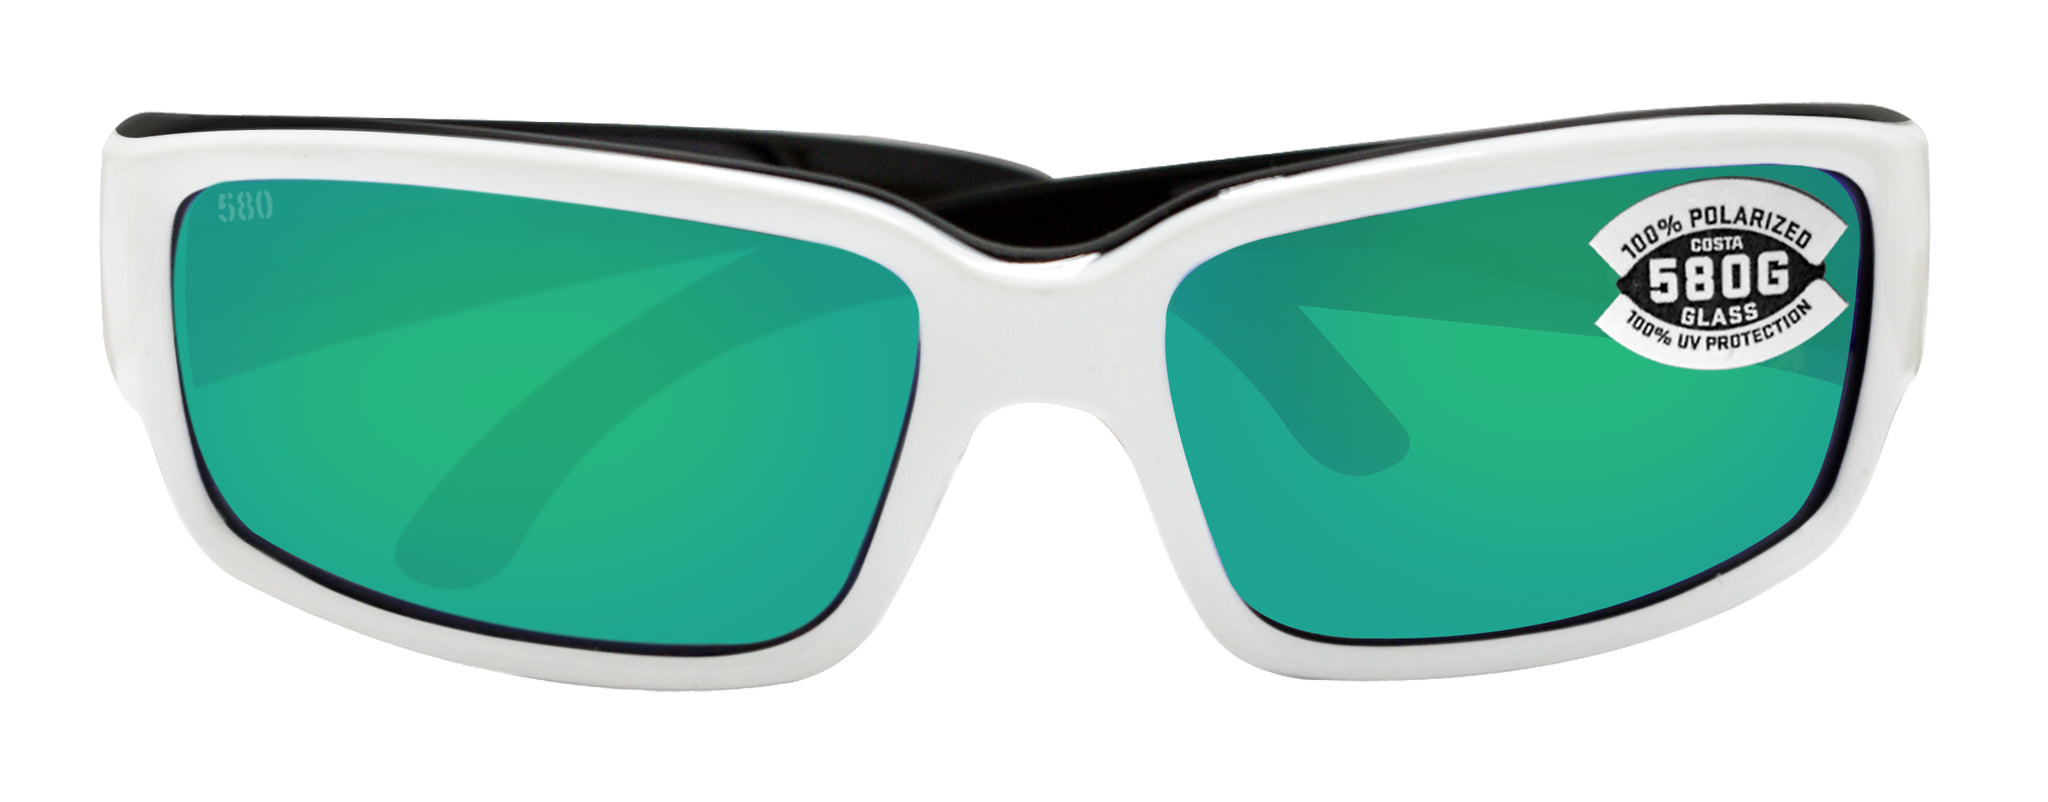 115ae359f050 ... Costa Del Mar Caballito White Black Frame Green Mirror 580G Glass  Polarized Lens ...